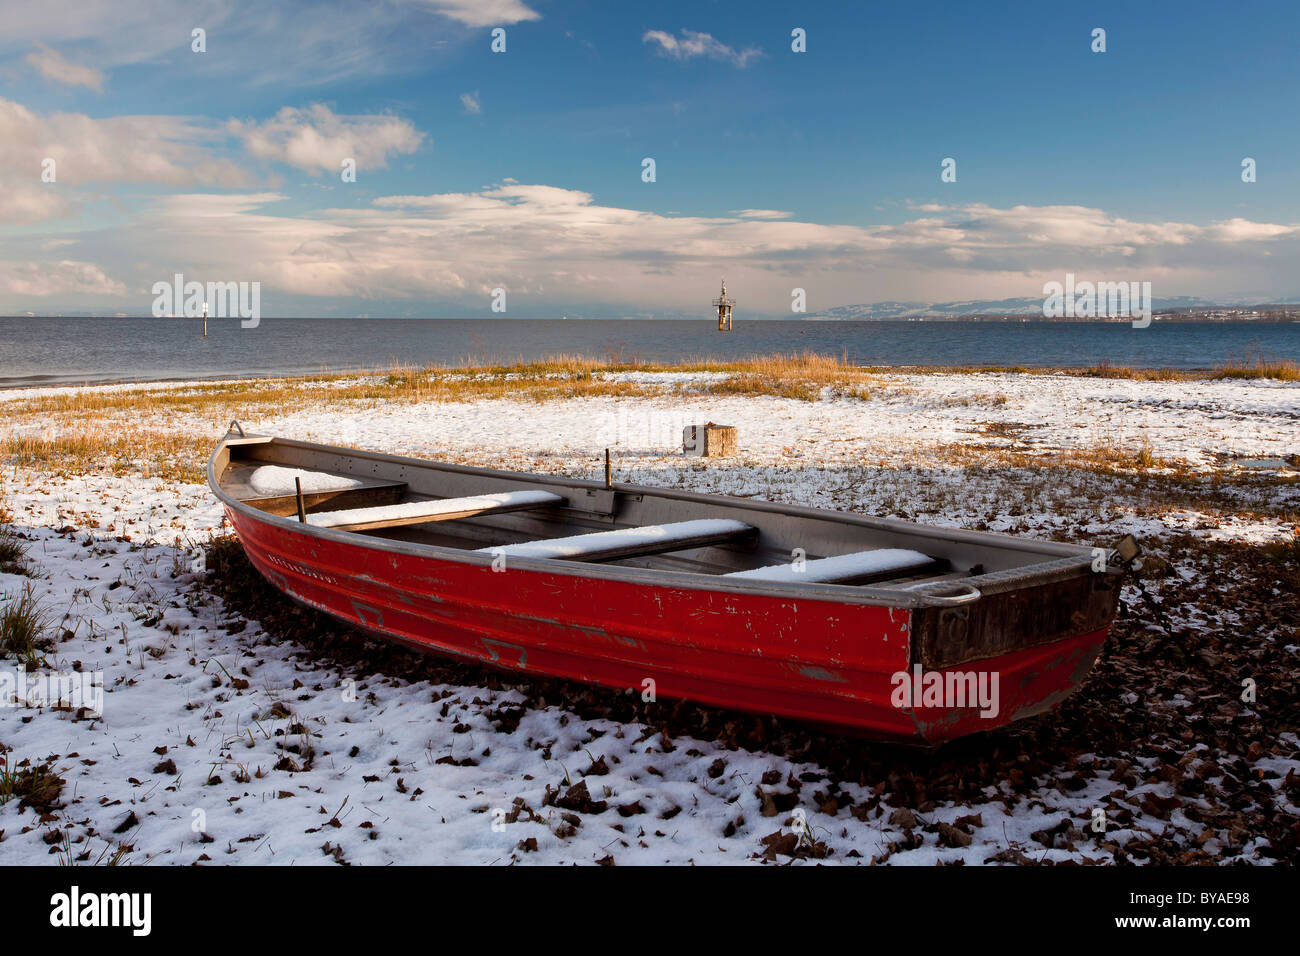 Life boat on the wintry Hoernle, a tongue of land in Konstanz, Lake Constance, Baden-Wuerttemberg, Germany, Europe Stock Photo